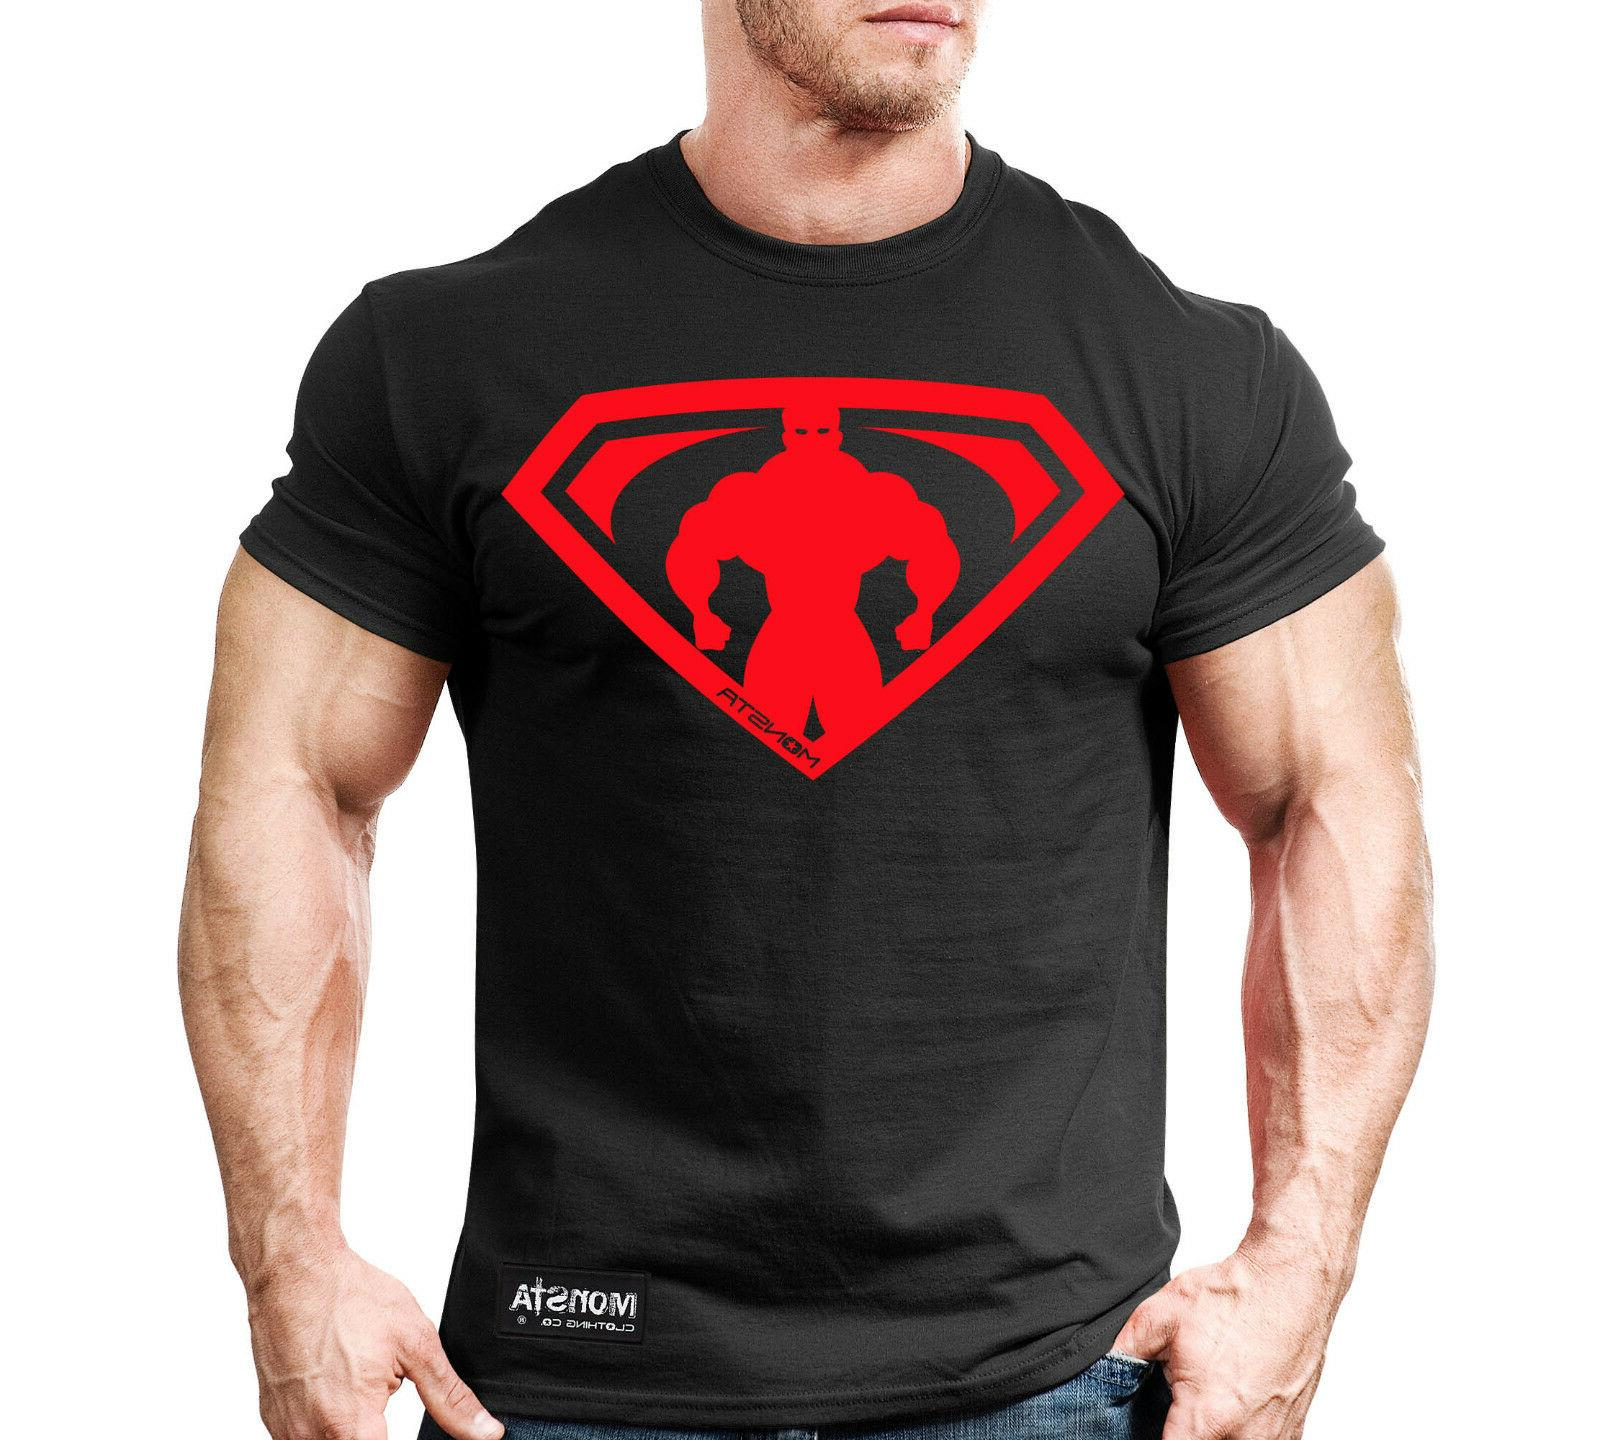 New Men's Monsta Clothing Fitness Gym T-shirt - HRD LVN Clas